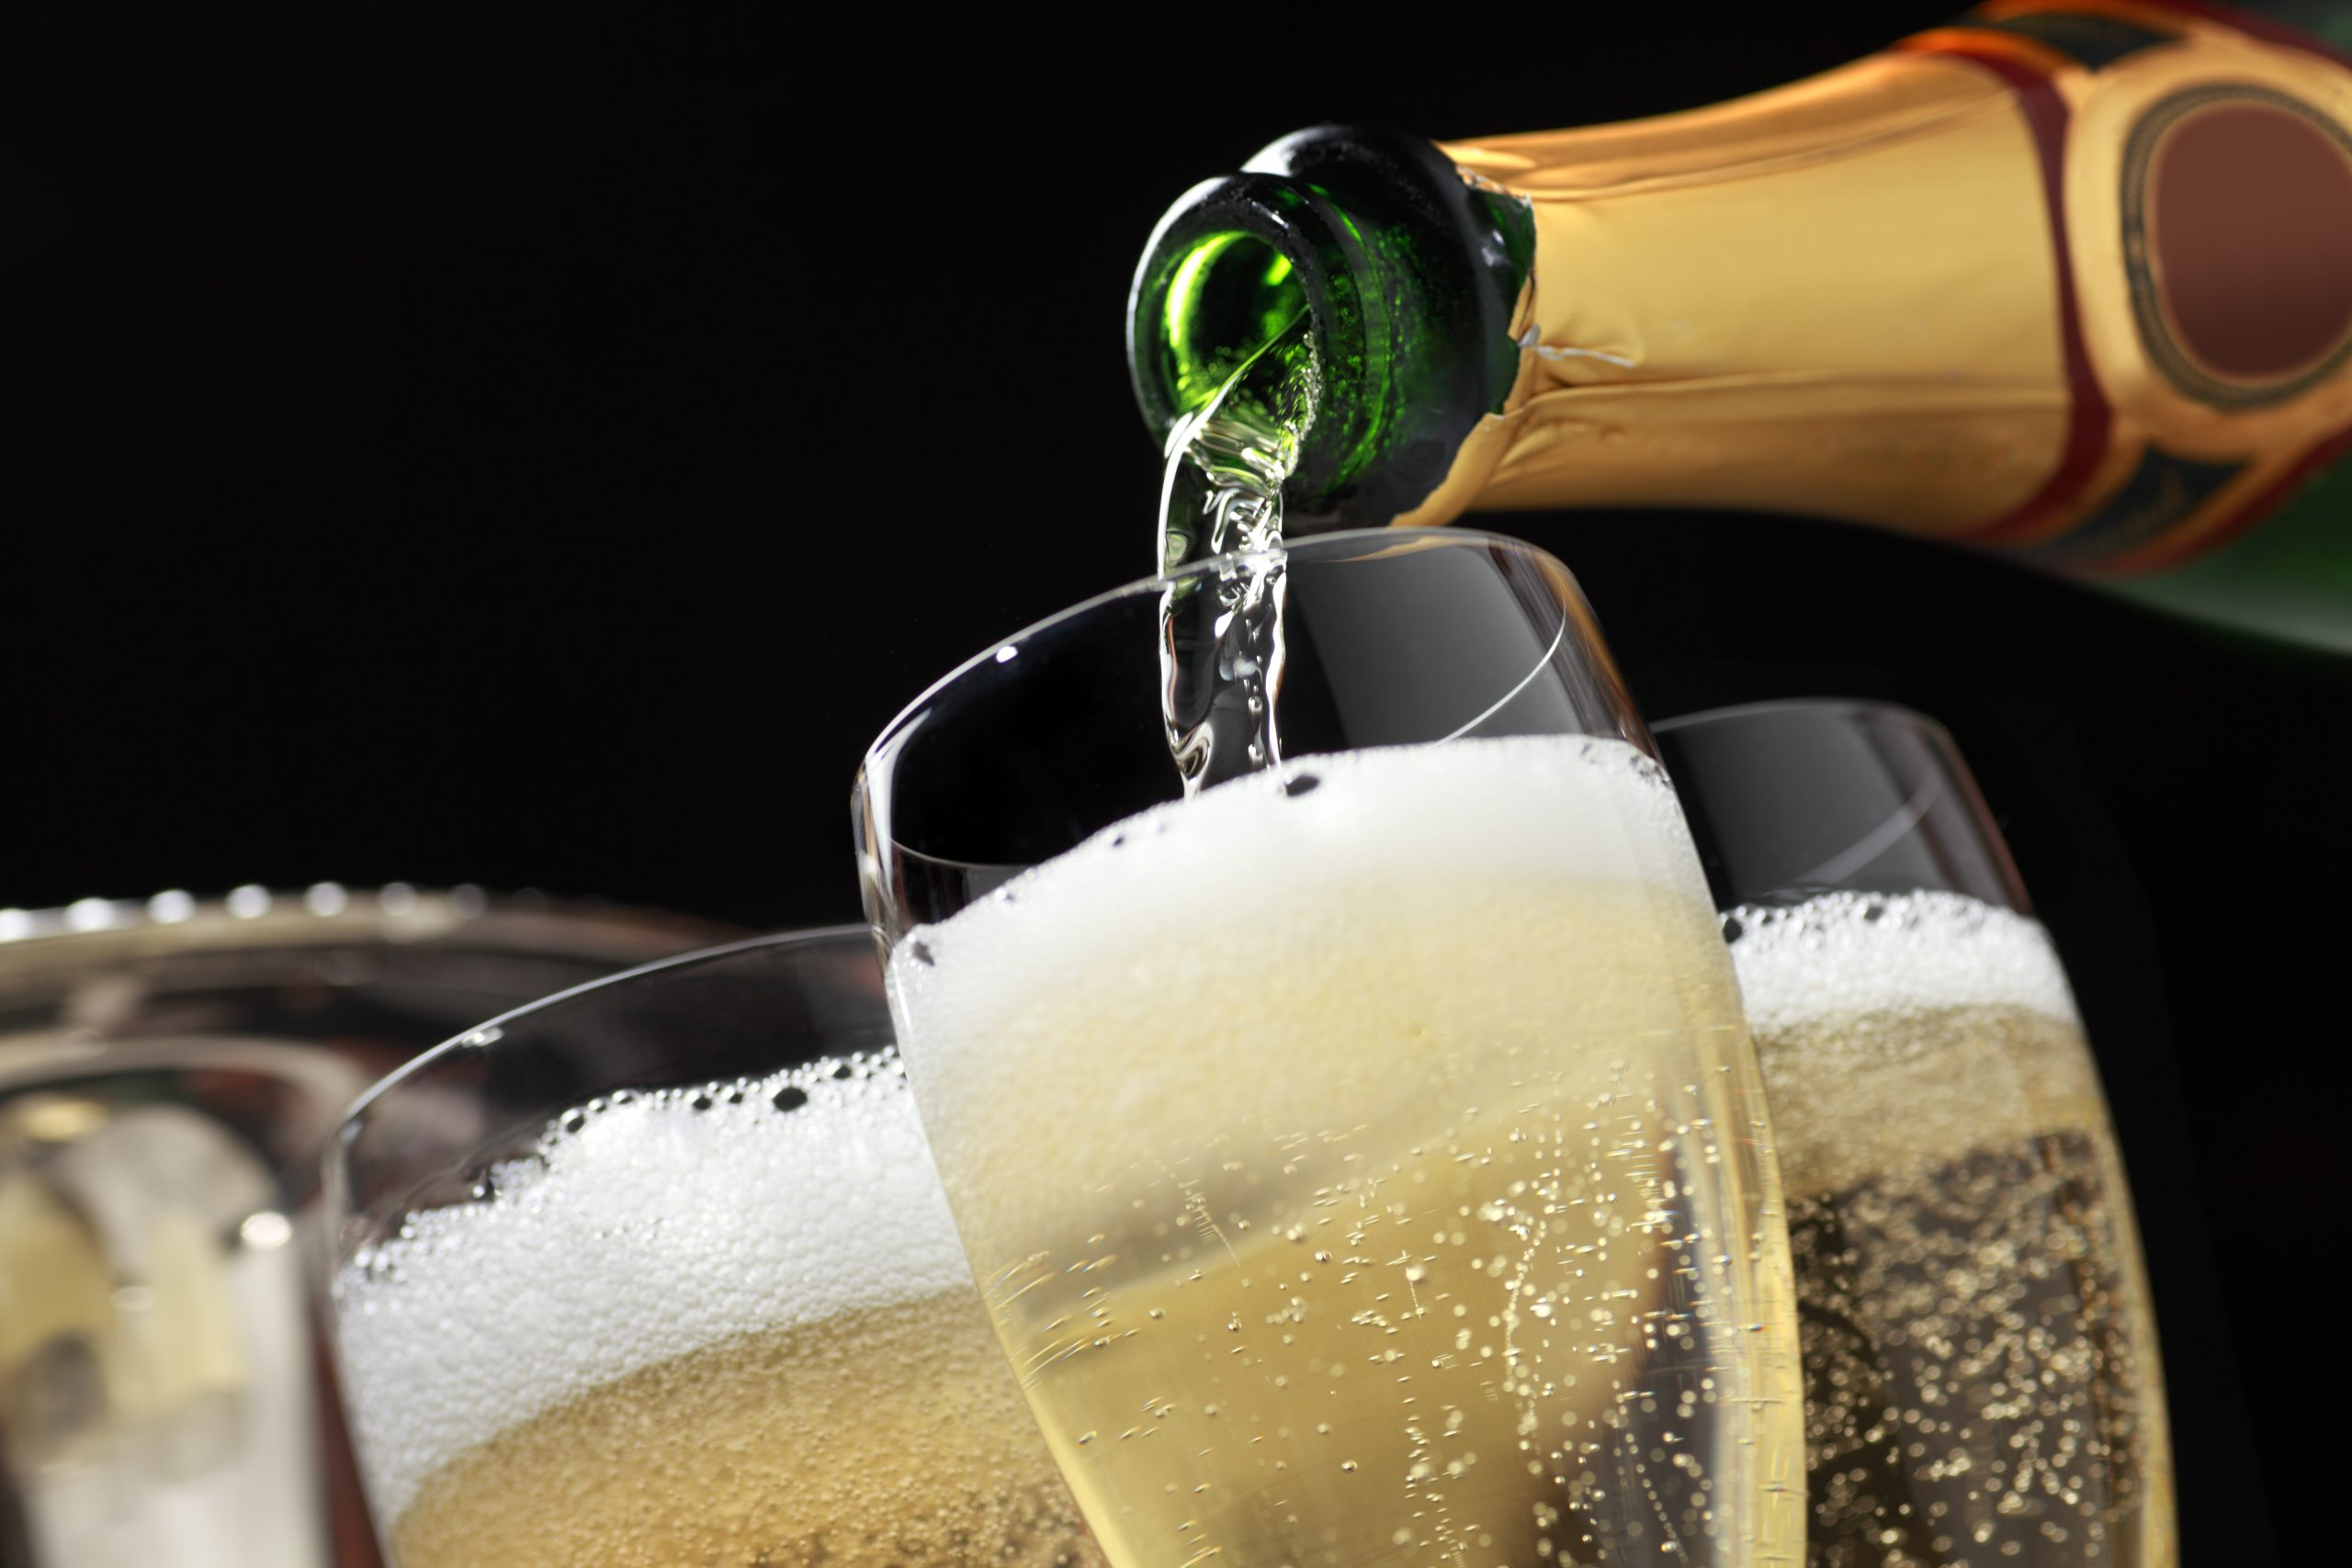 Champagne being poured into champagne glasses: Five top tips for serving a glass of Champagne